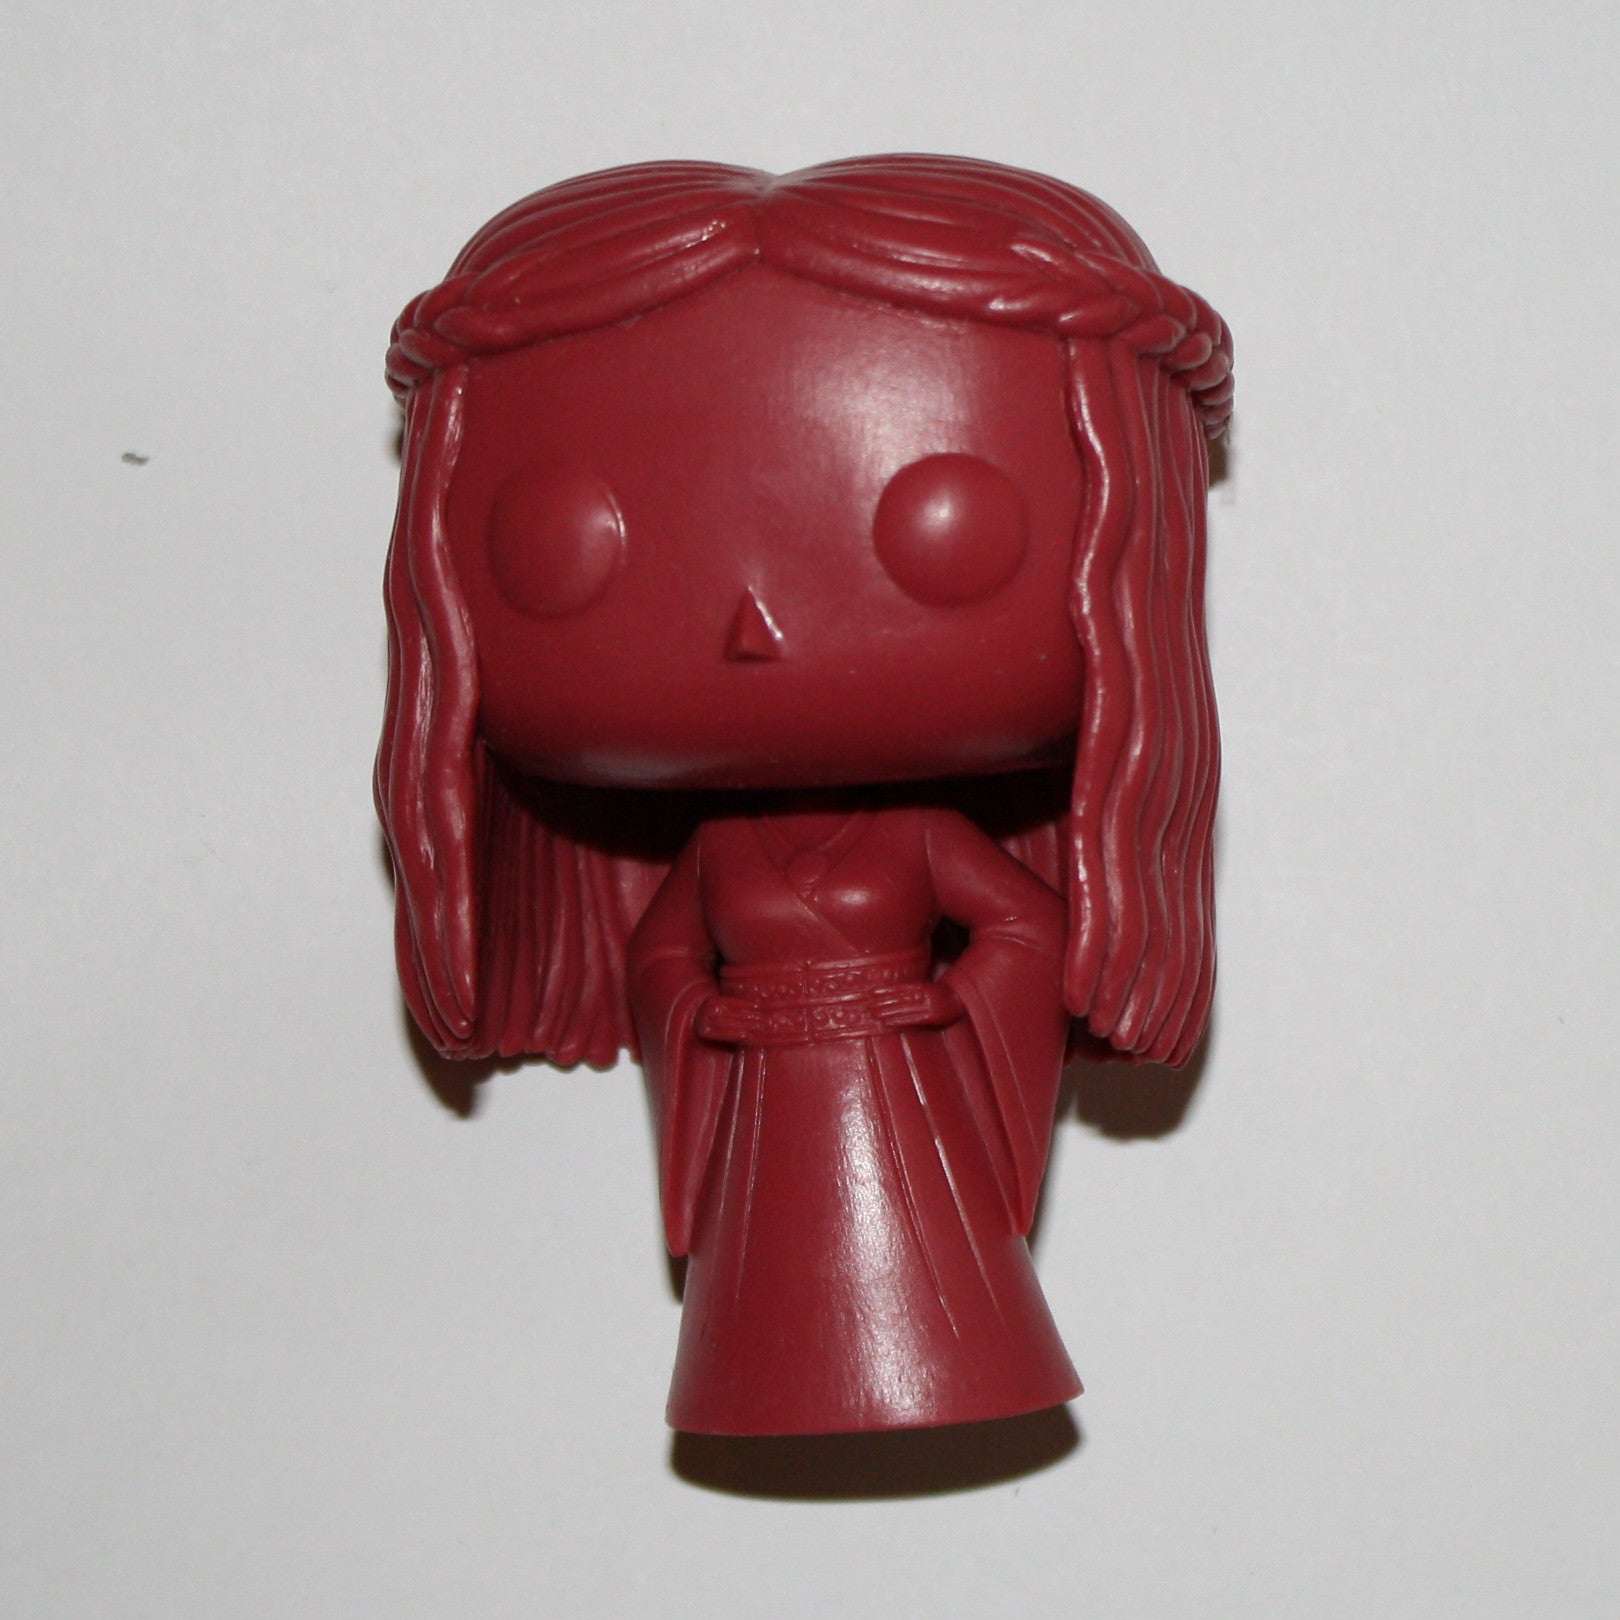 Cersei Lannister [Game of Thrones] Proto